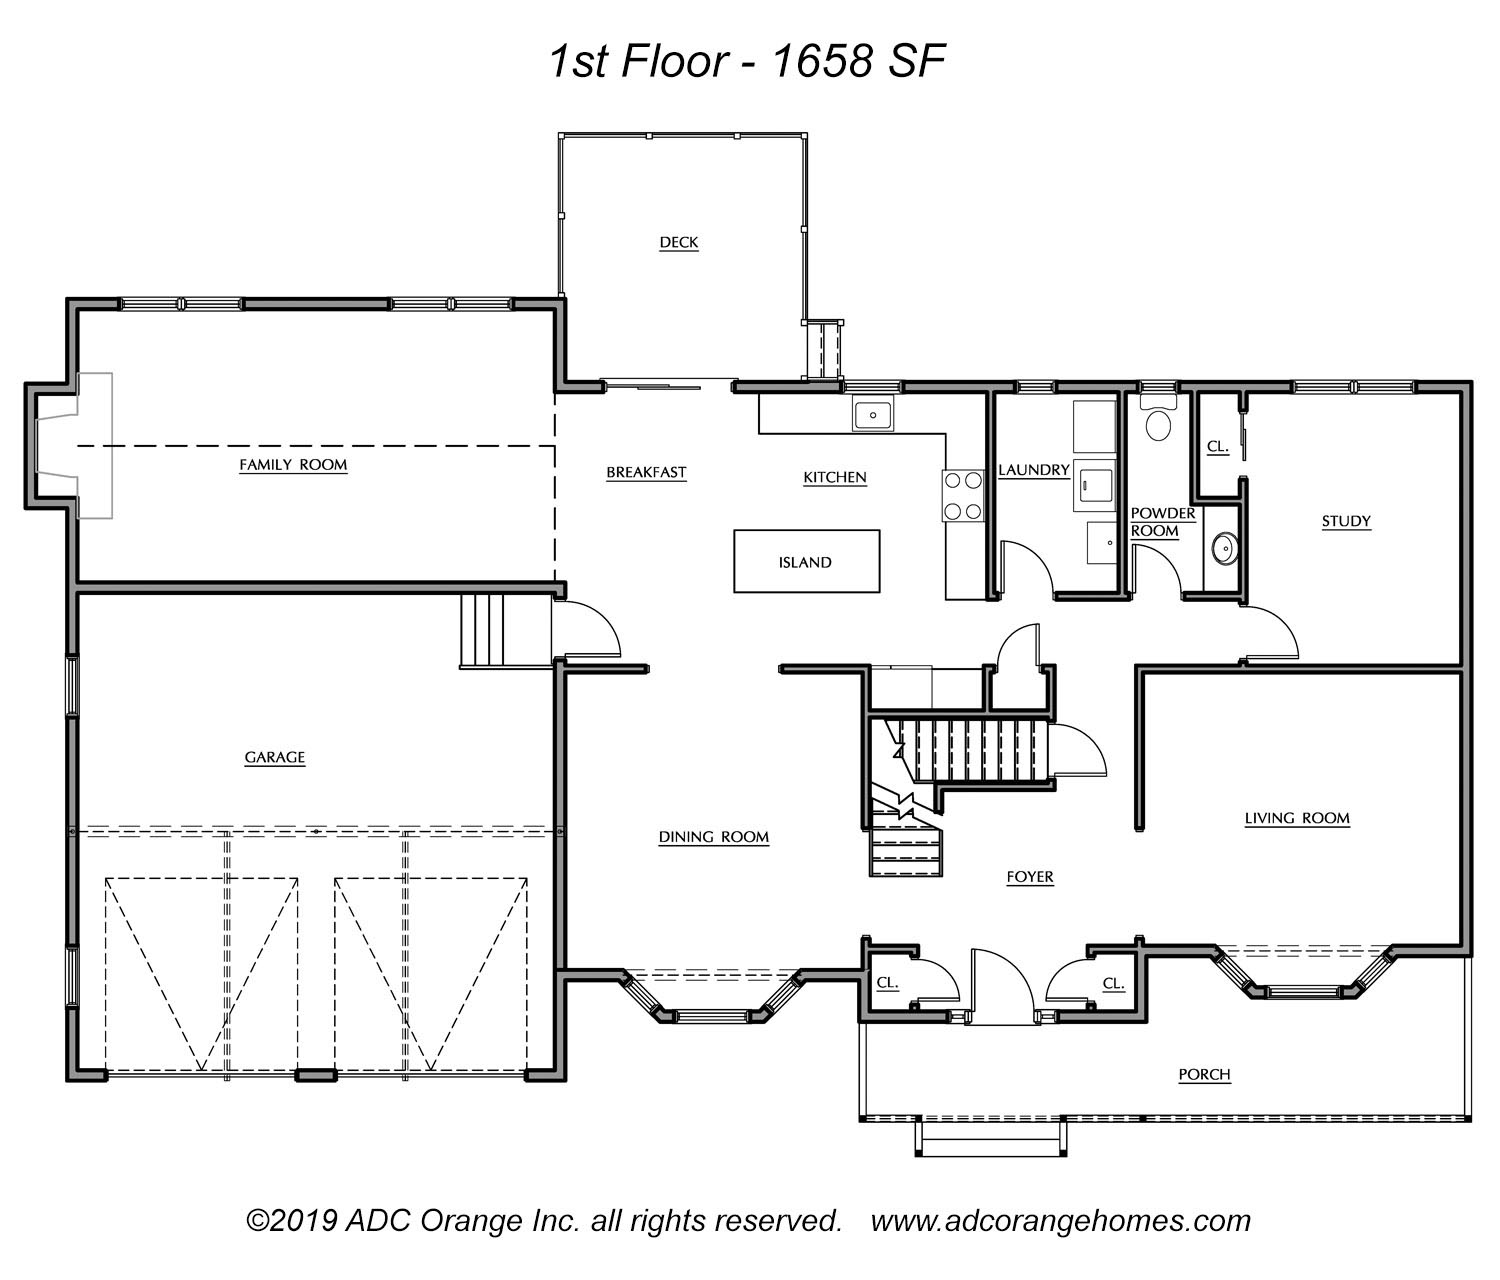 1st Floor Plan for Carmel - New Home in Orange County, New York